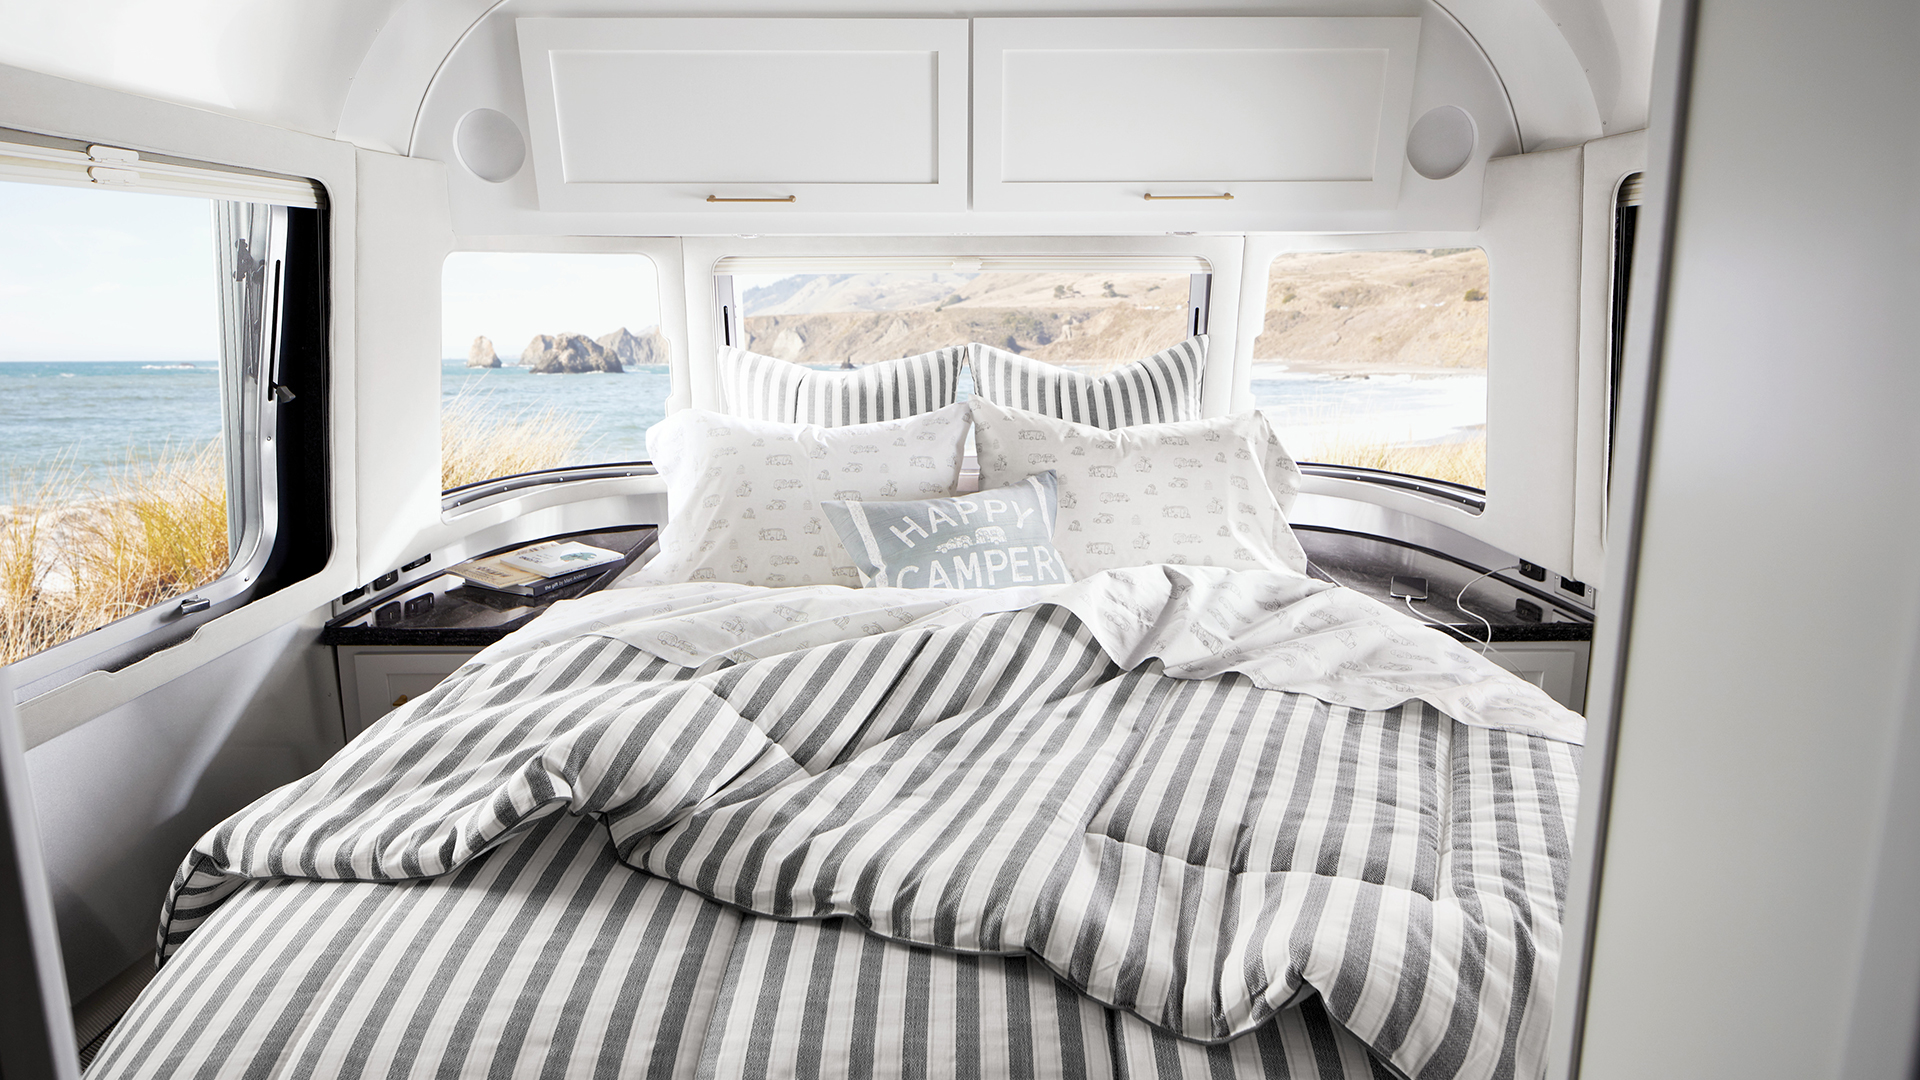 Airstream-Pottery-Barn-Bedspread-Master-Bedroom